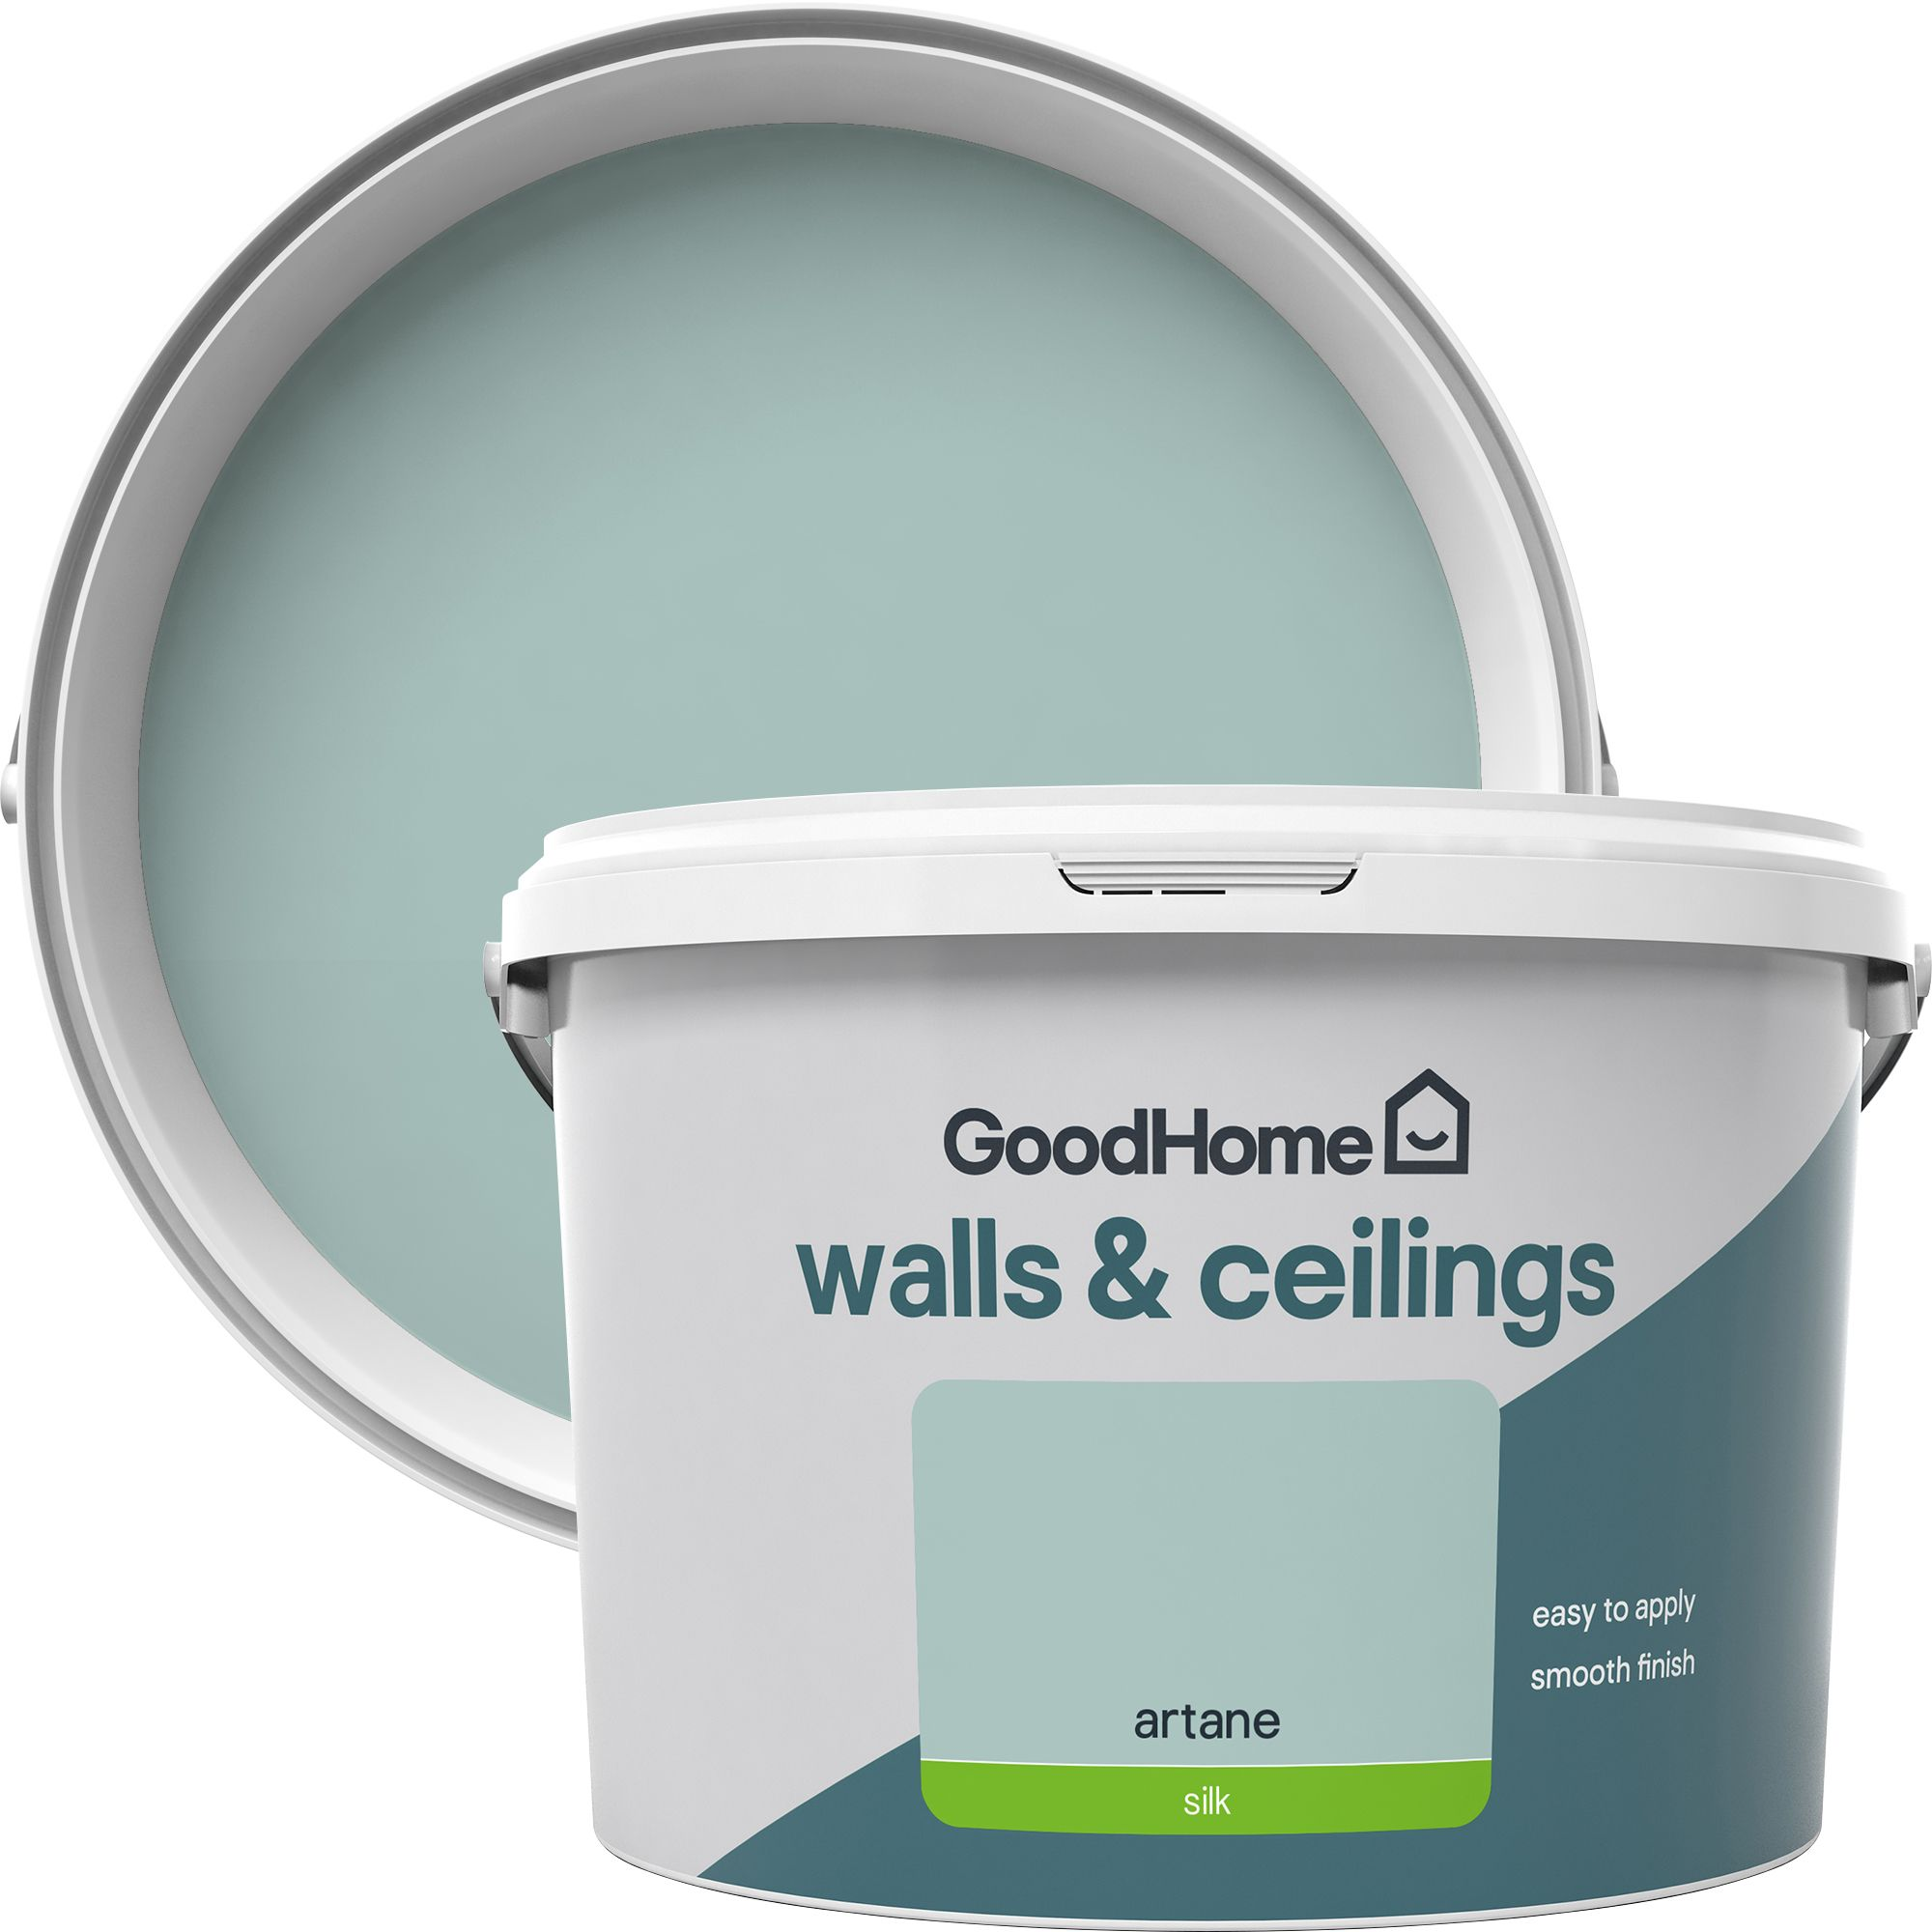 GoodHome Walls & ceilings Artane Silk Emulsion paint 2 5L | Departments |  TradePoint